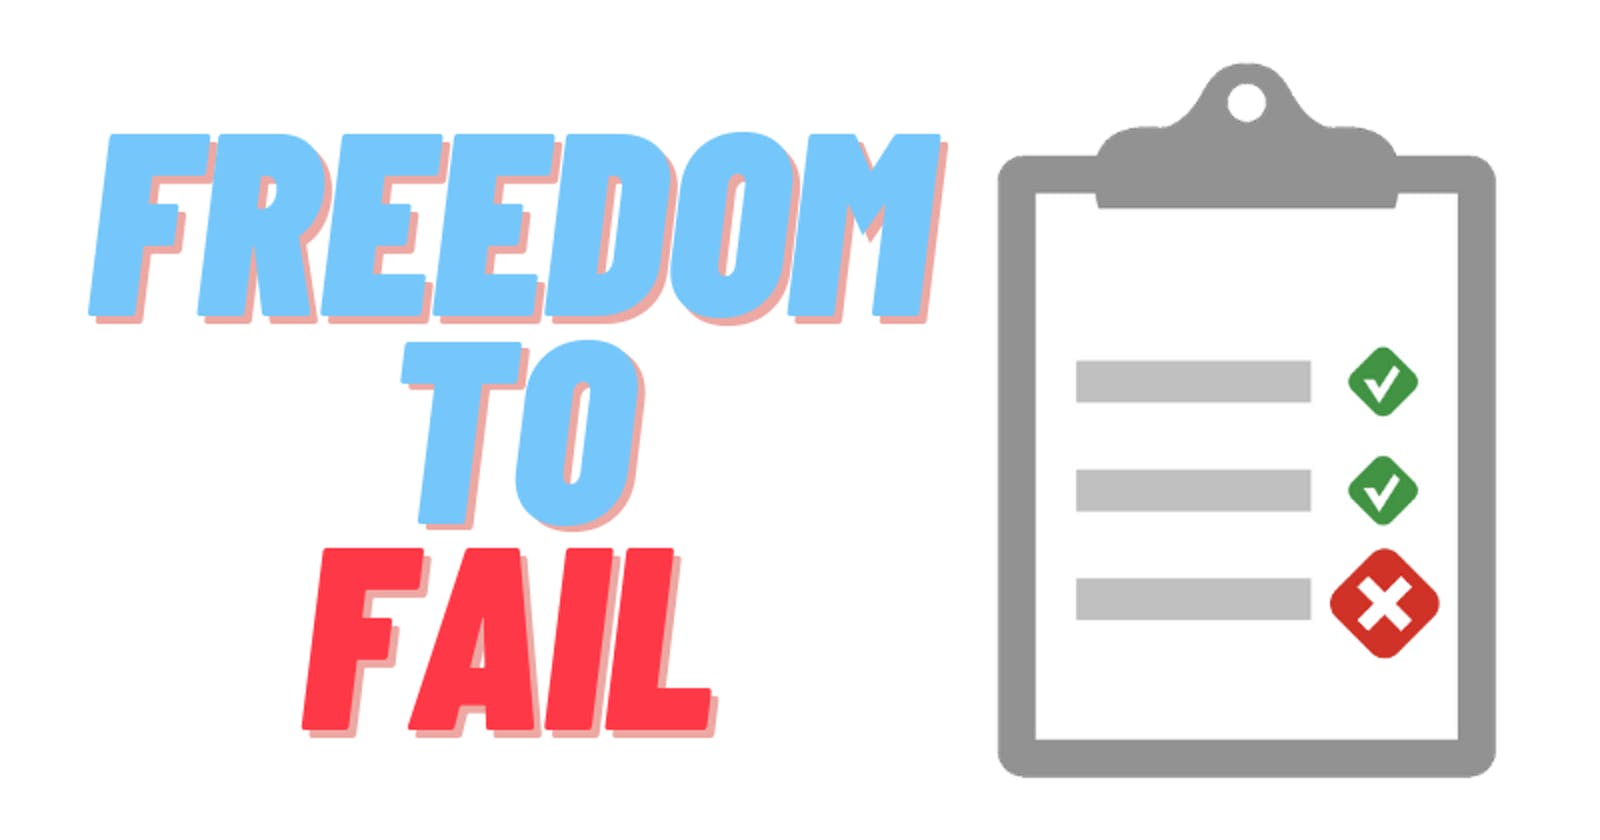 Unit Testing - The Freedom to fail ❌